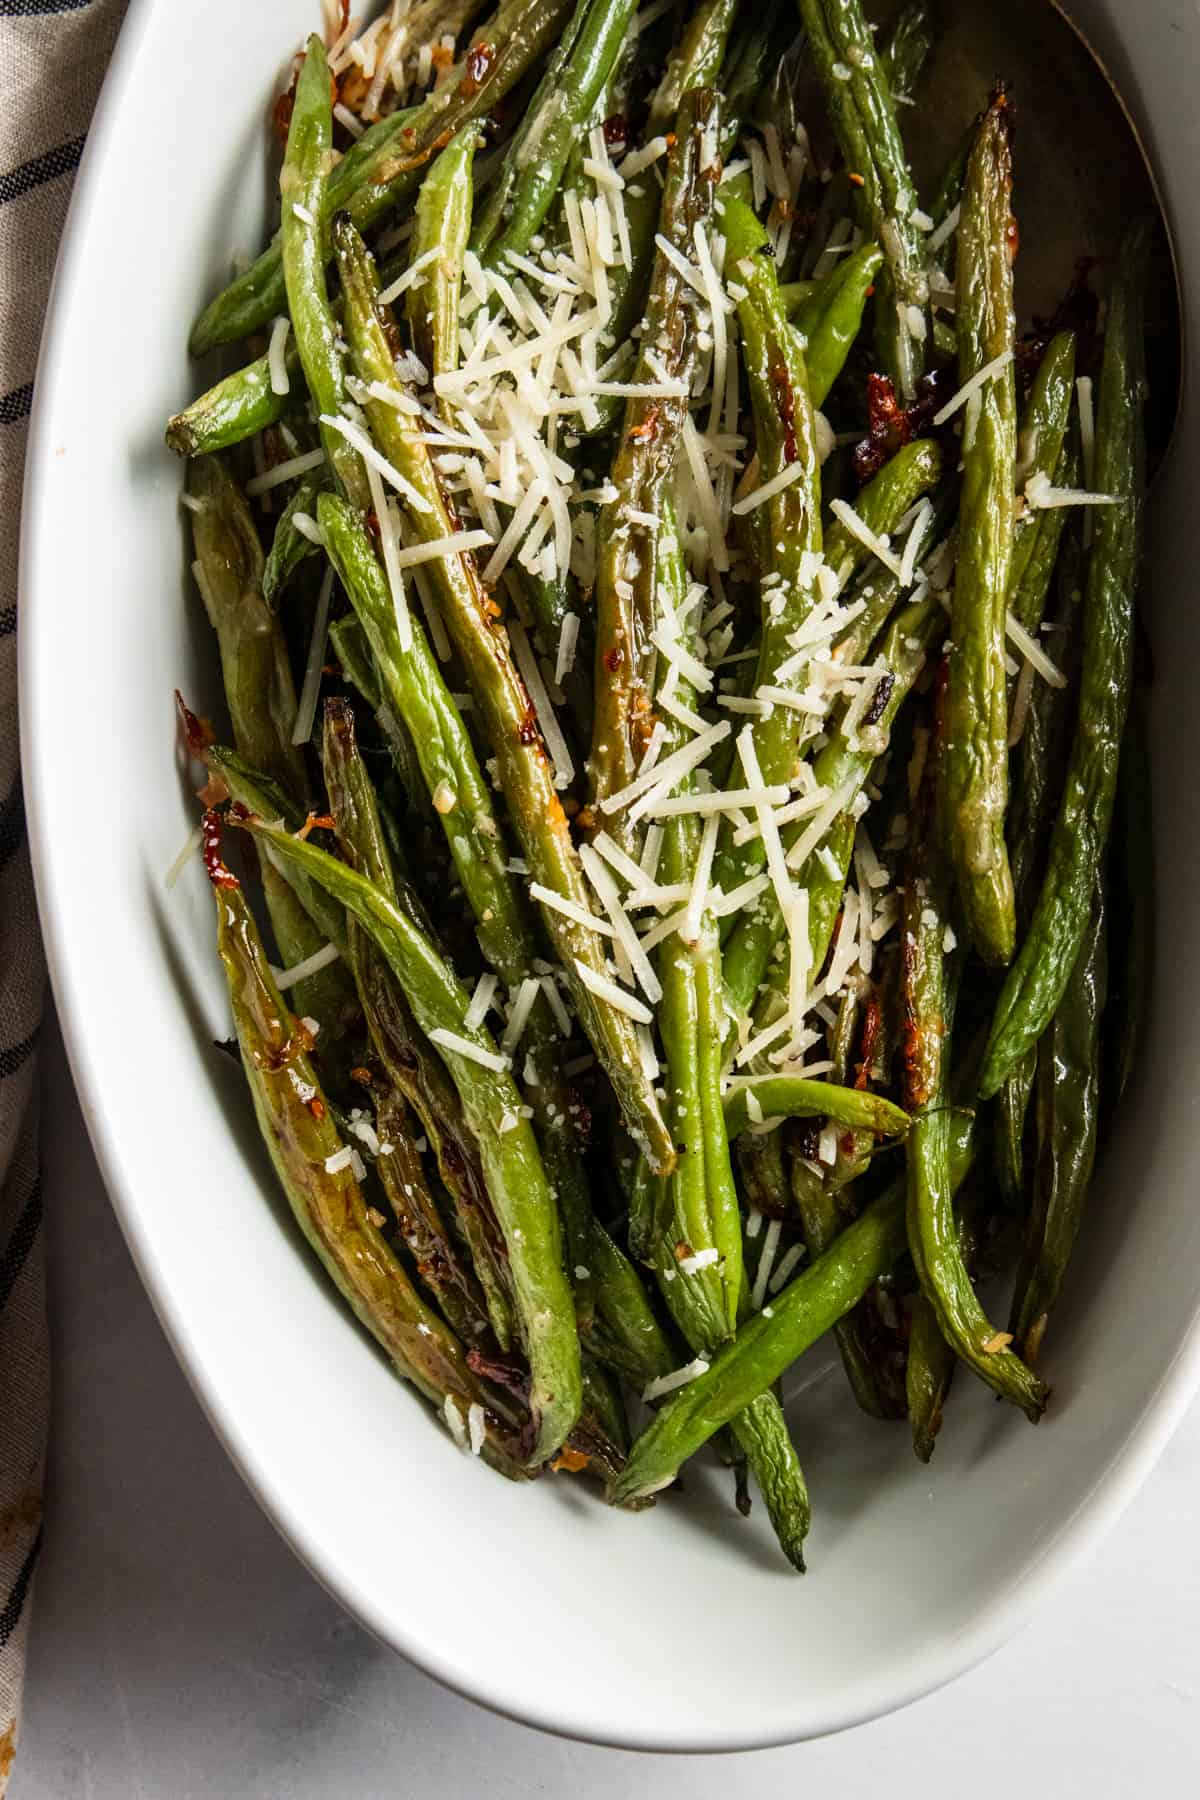 Roasted green beans in serving bowl.